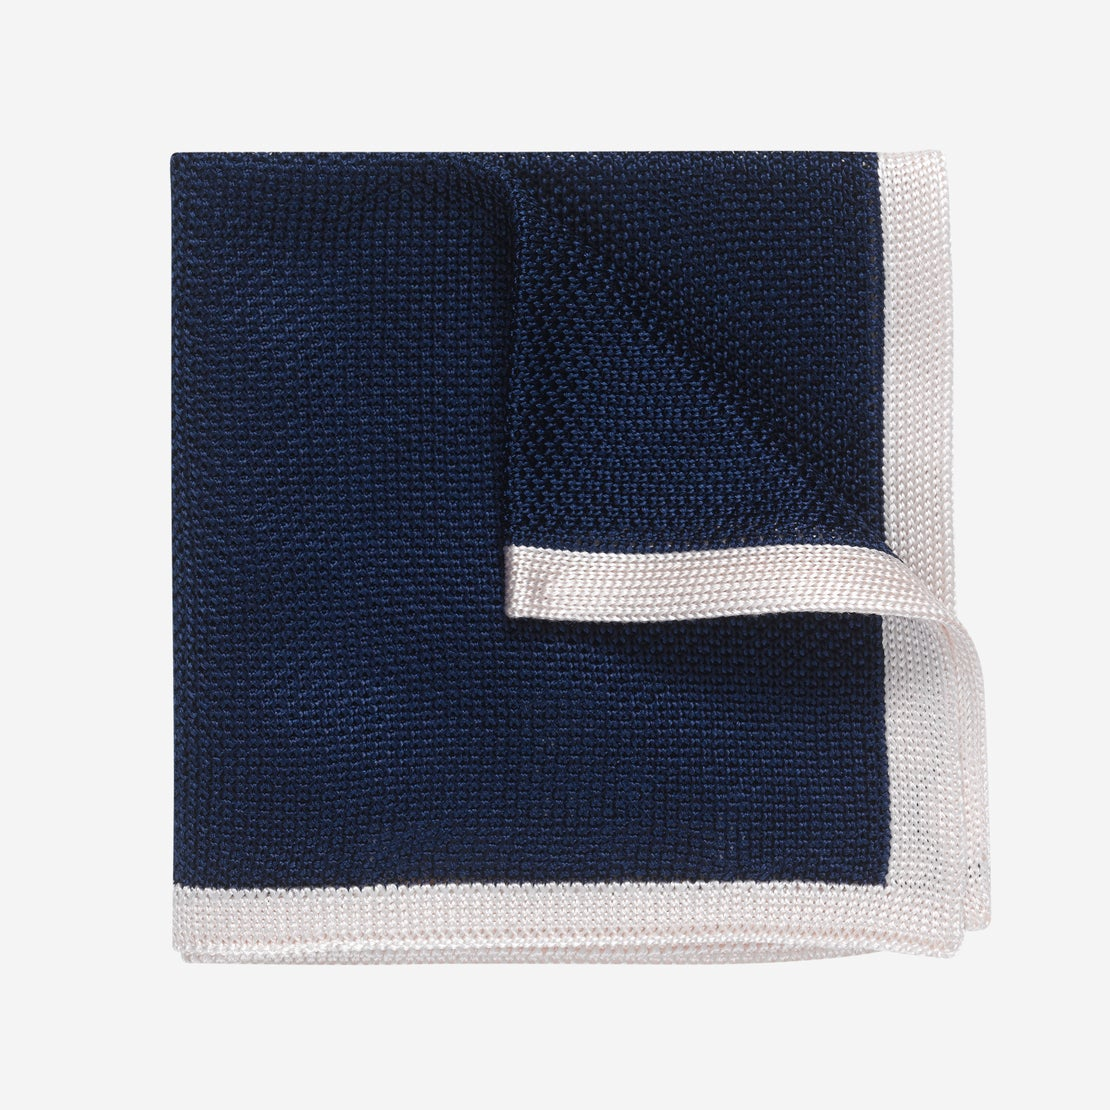 Navy with White Border Knitted Pocket Square